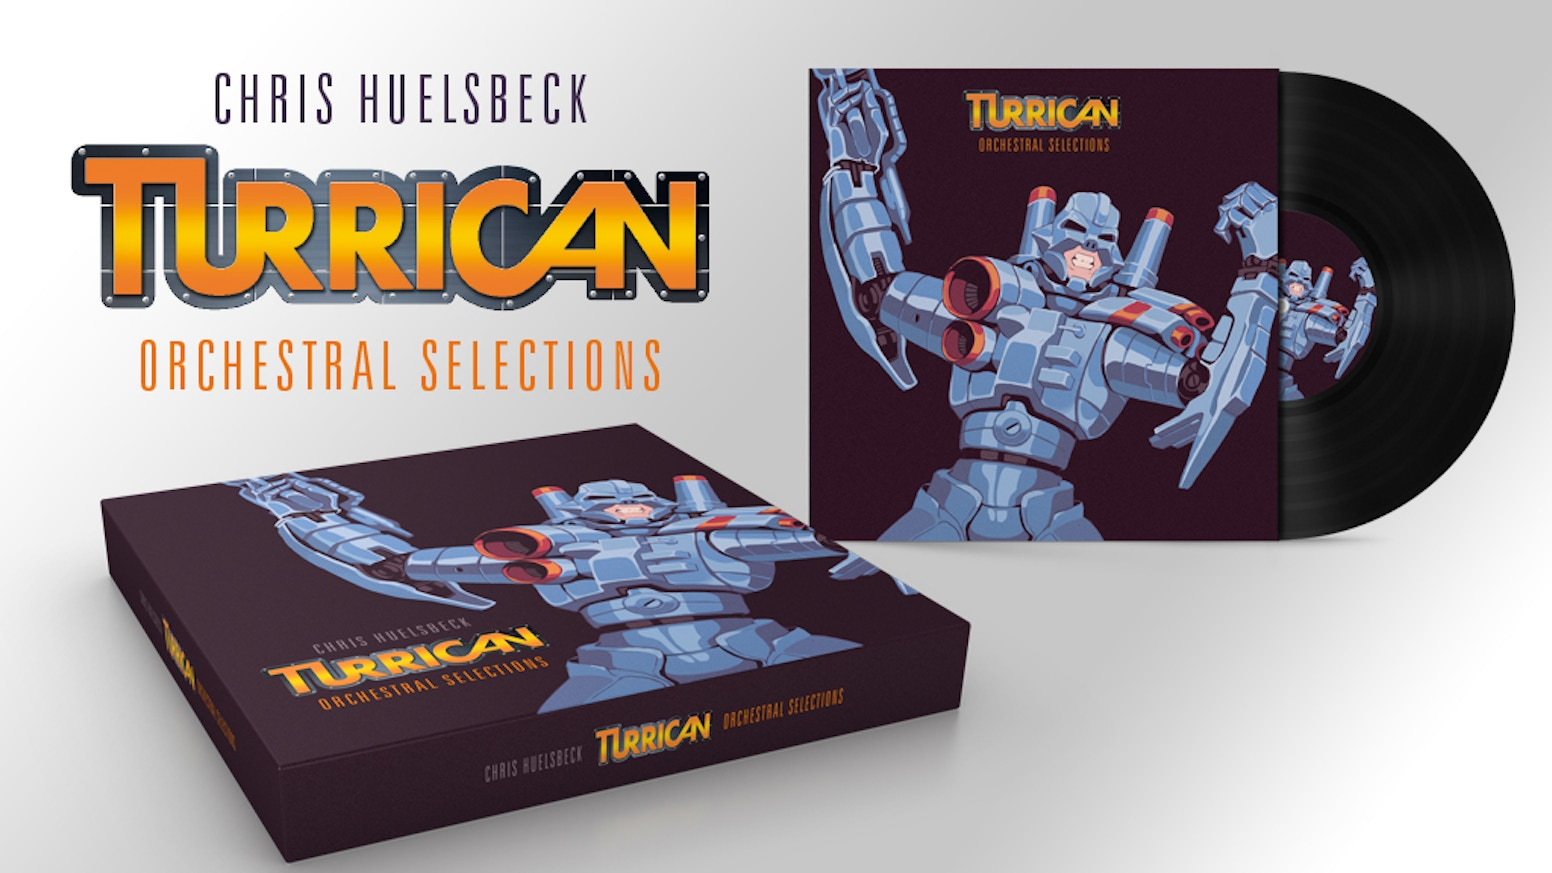 A limited Collector's Edition Box Set featuring new live orchestra recordings of music from Turrican 1, 2 & 3 + a new Bonus Amiga Album